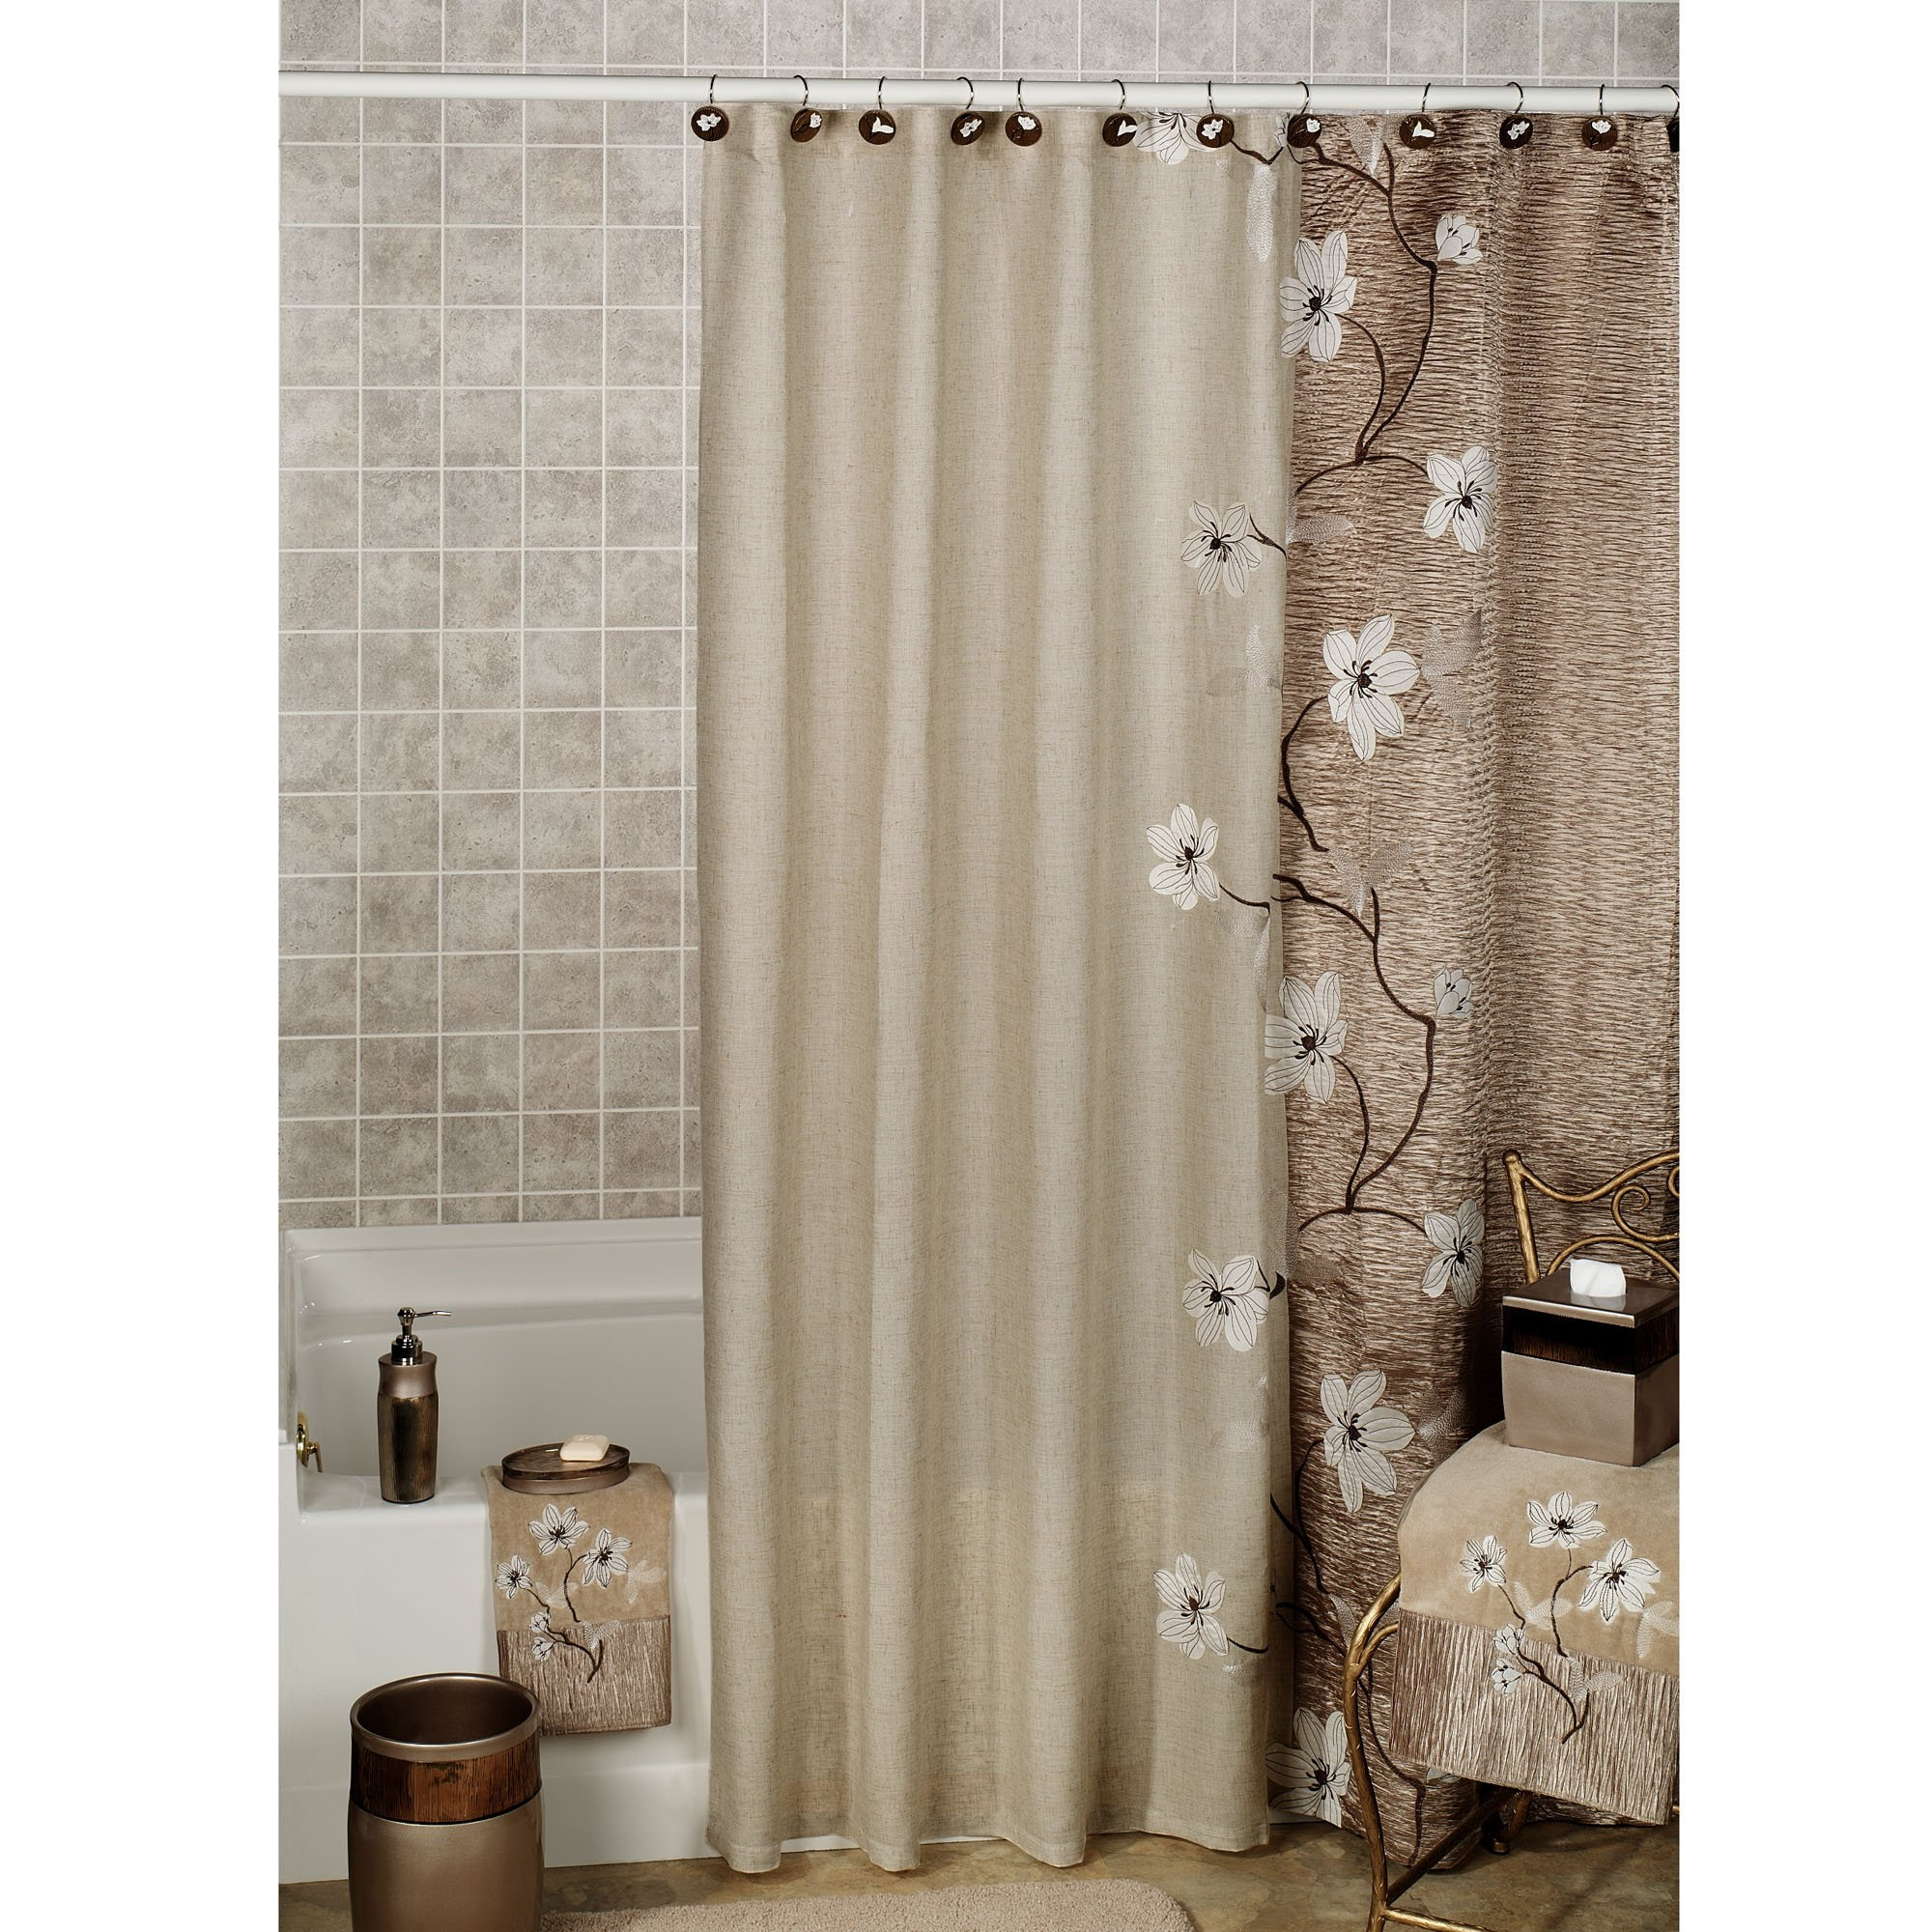 Shower And Window Curtain Sets Bathroom Shower Curtain And Window Curtain Sets Shower Curtains